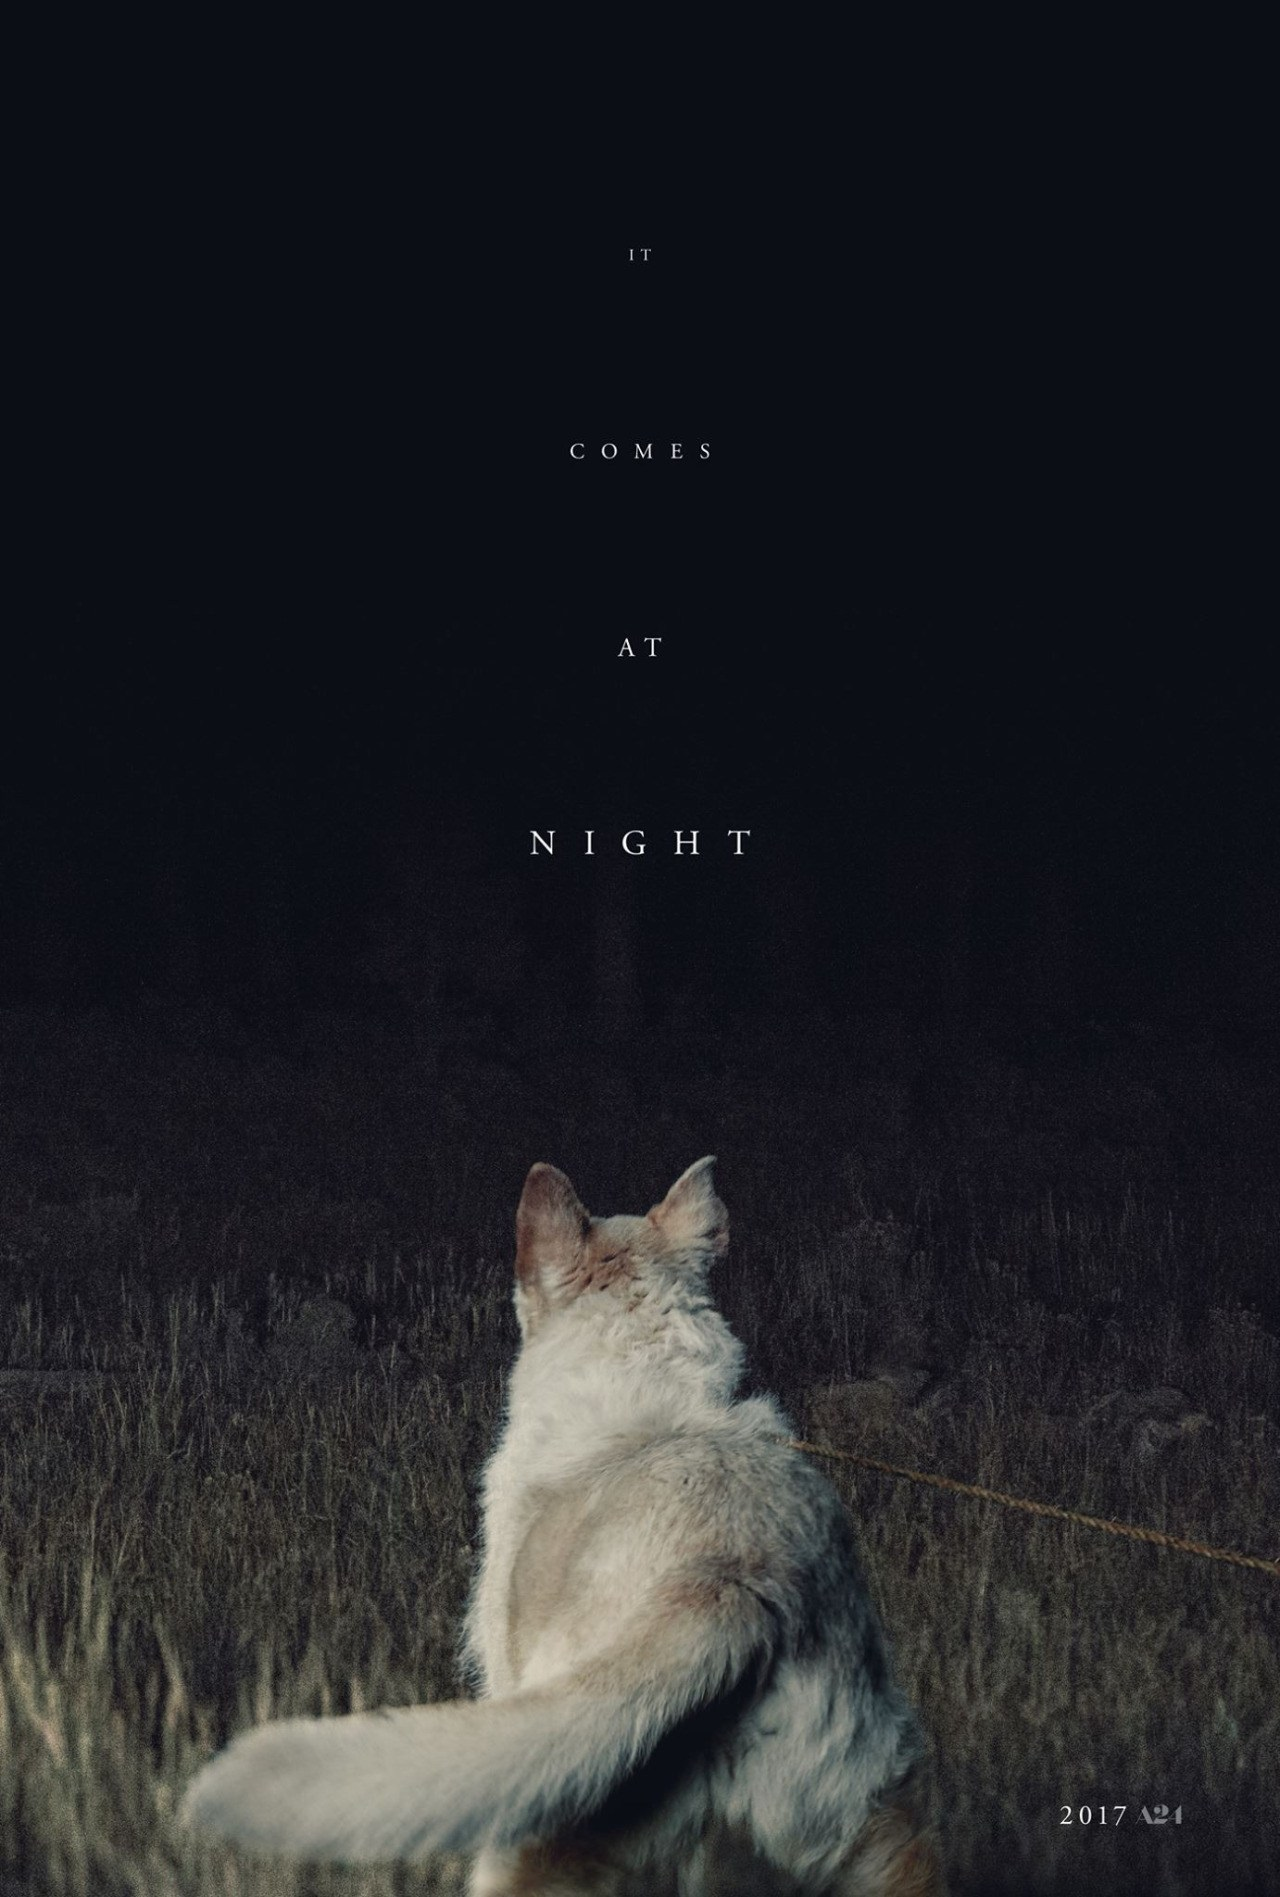 it-comes-at-night-trailer-poster-gallery